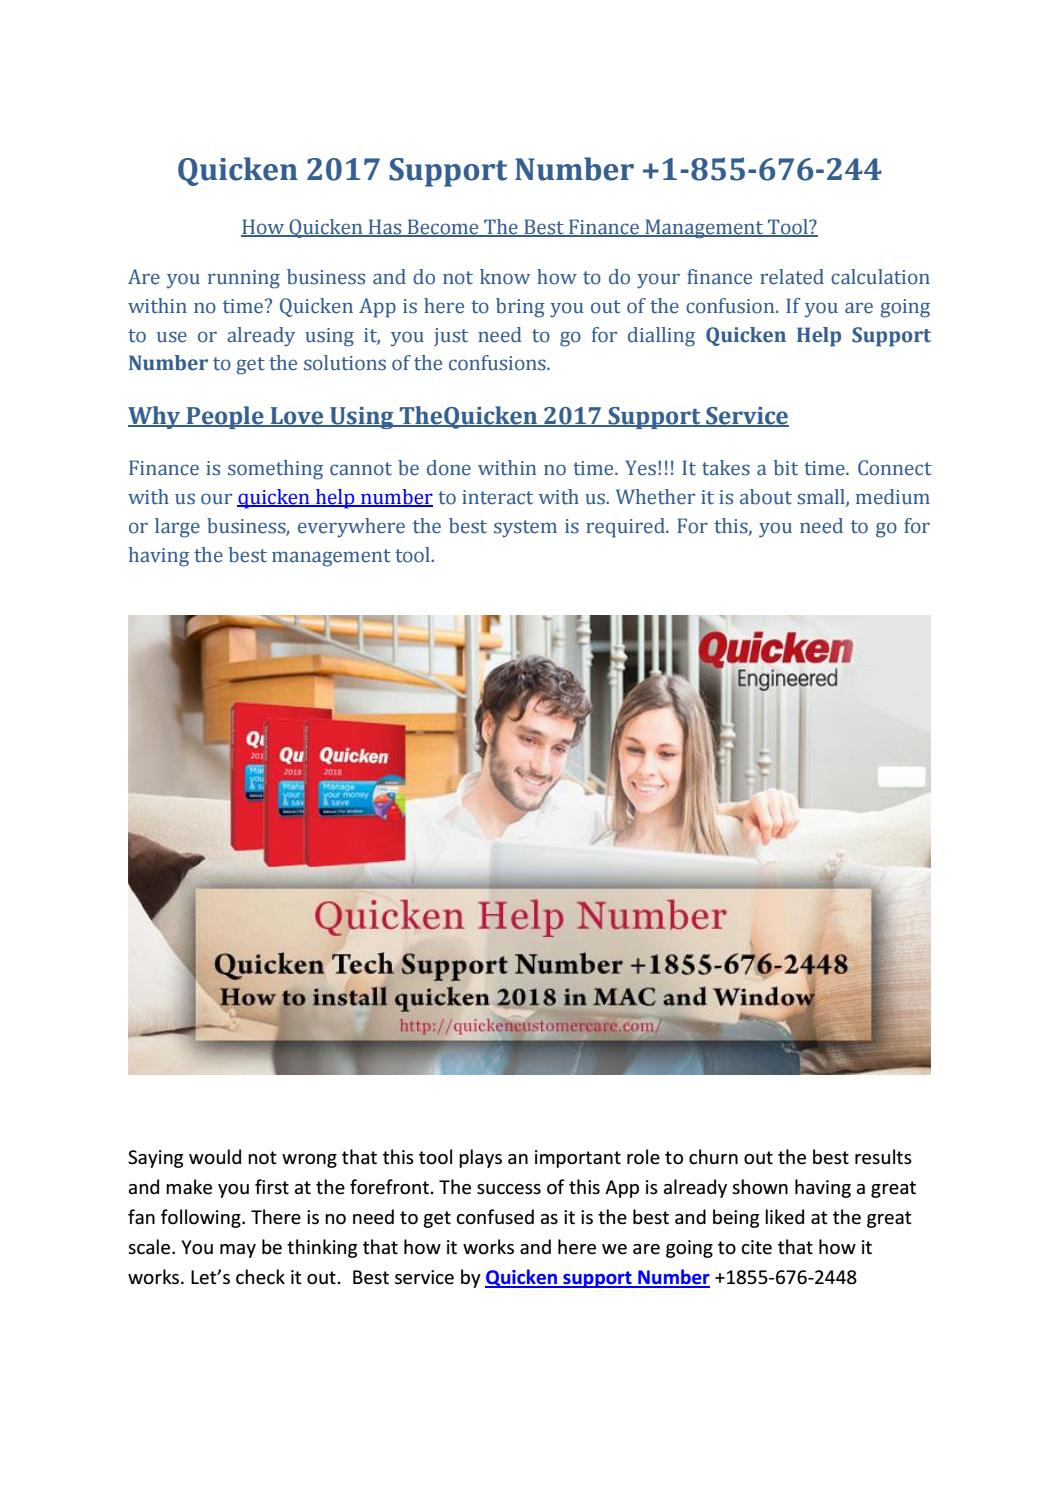 Quicken Support Number 855-676-2448 Customer help number by